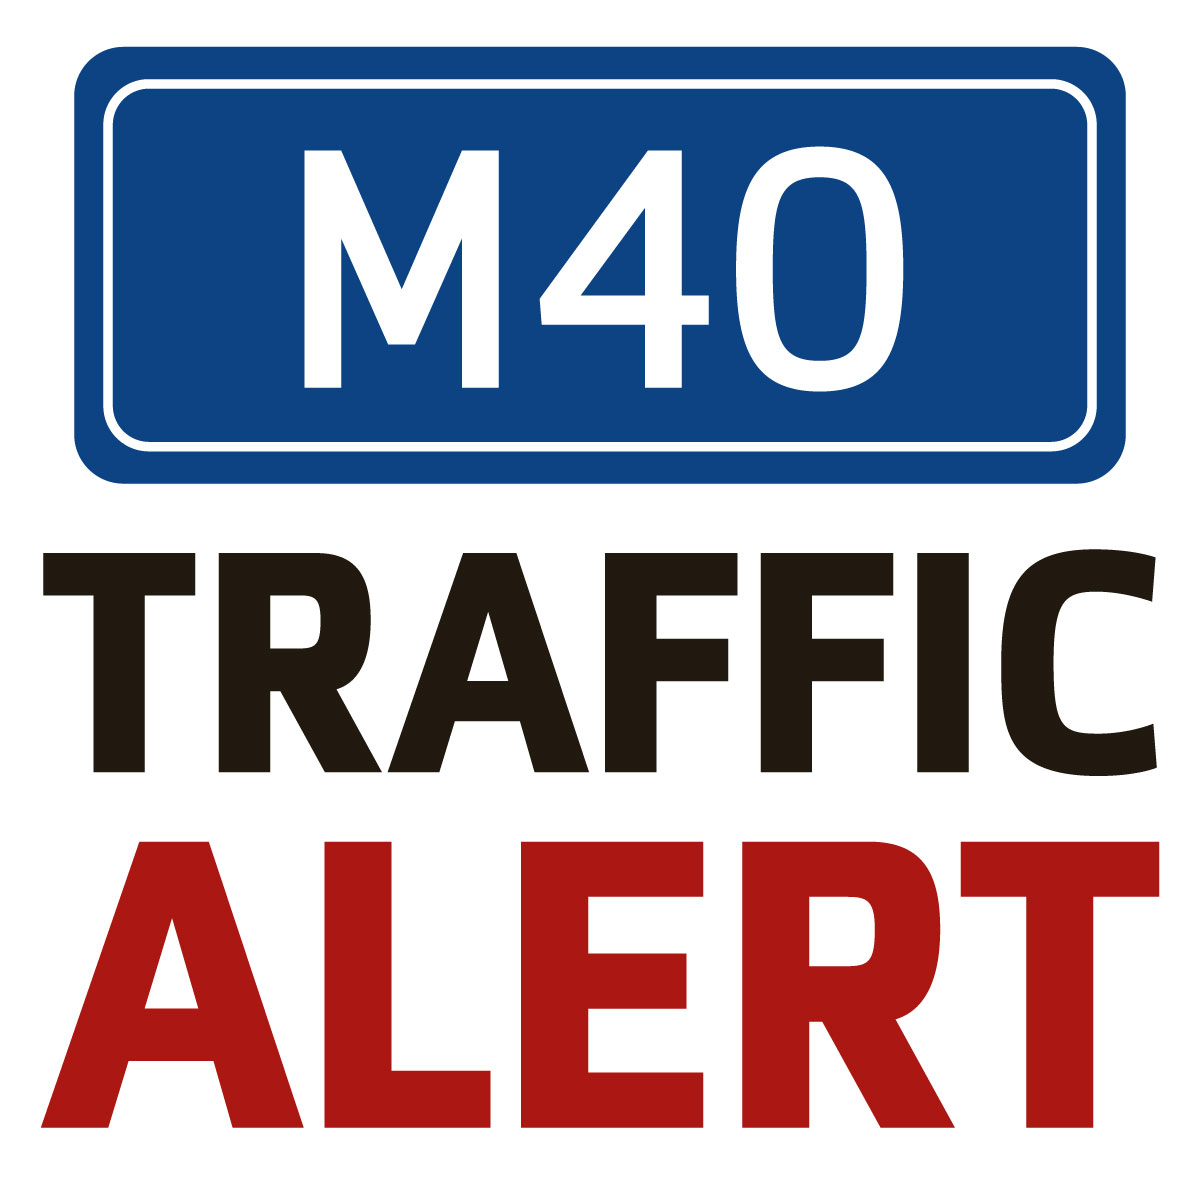 Traffic jam after M40 slip road crash